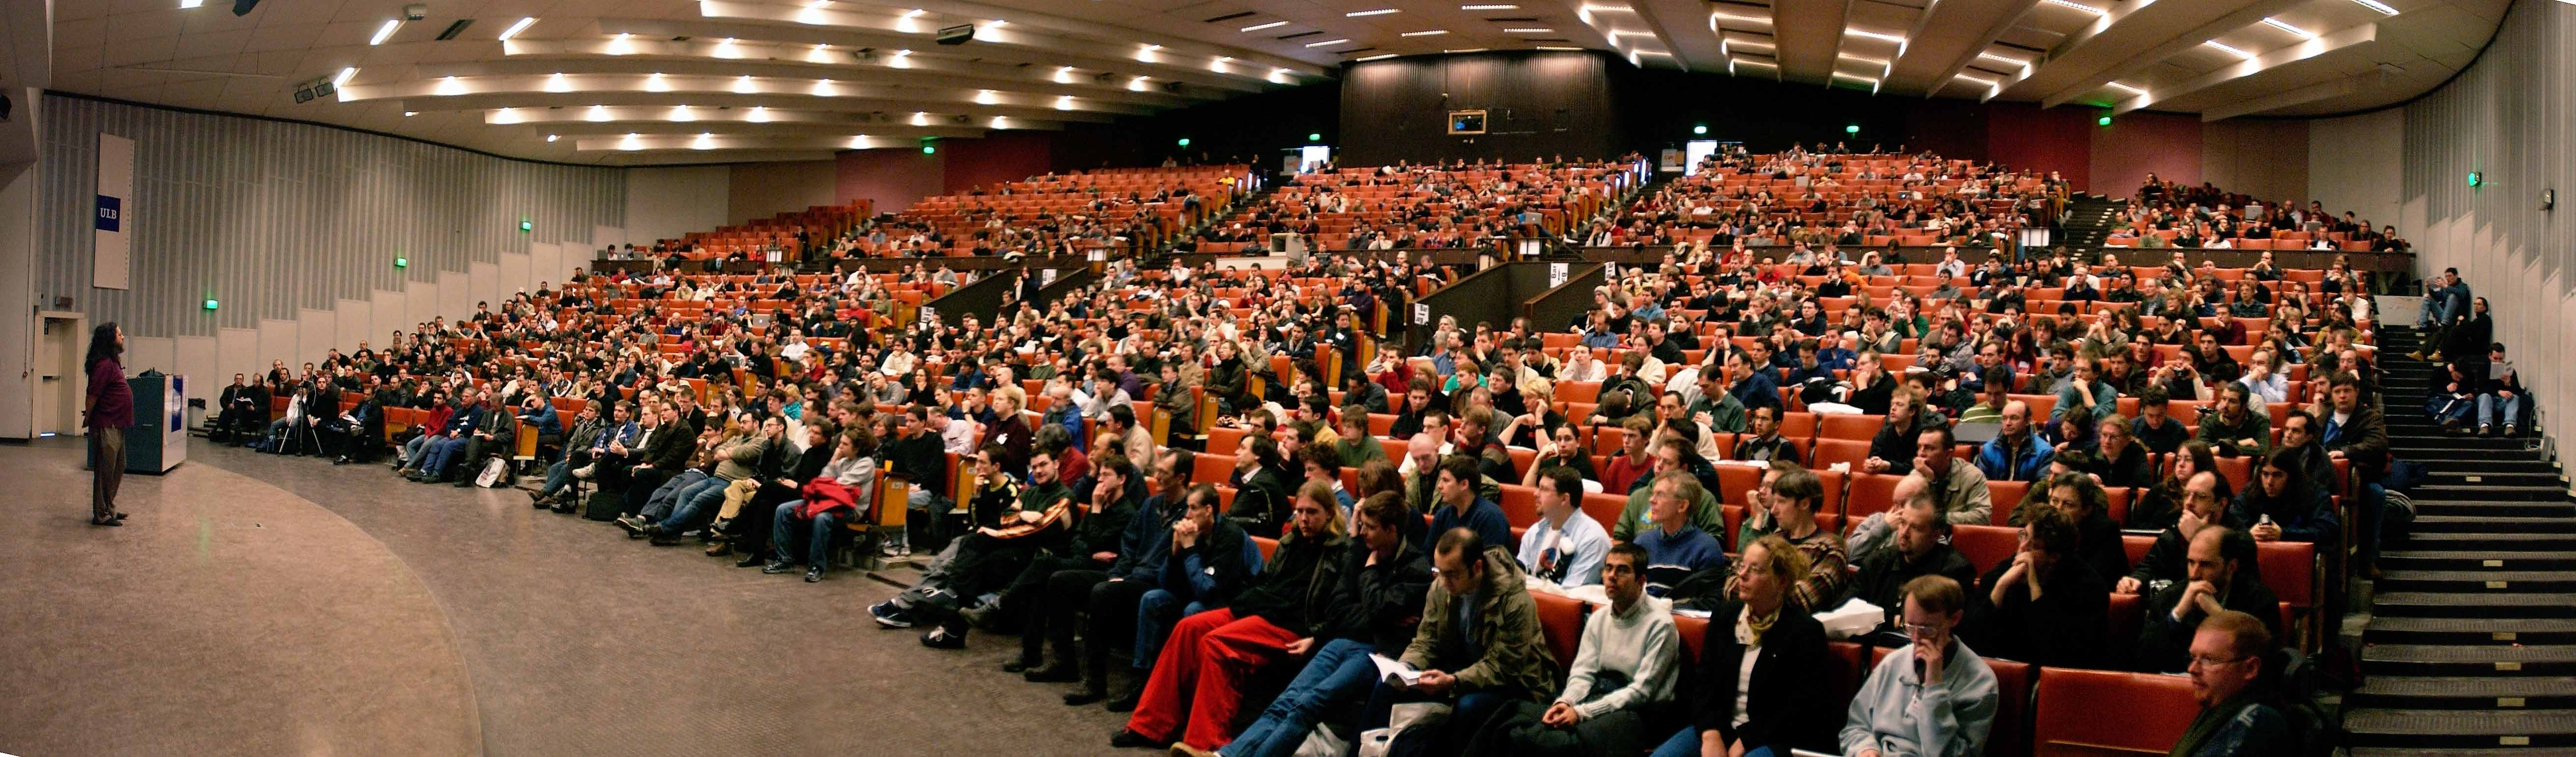 FOSDEM event in Brussels on 30 & 31 January 2016